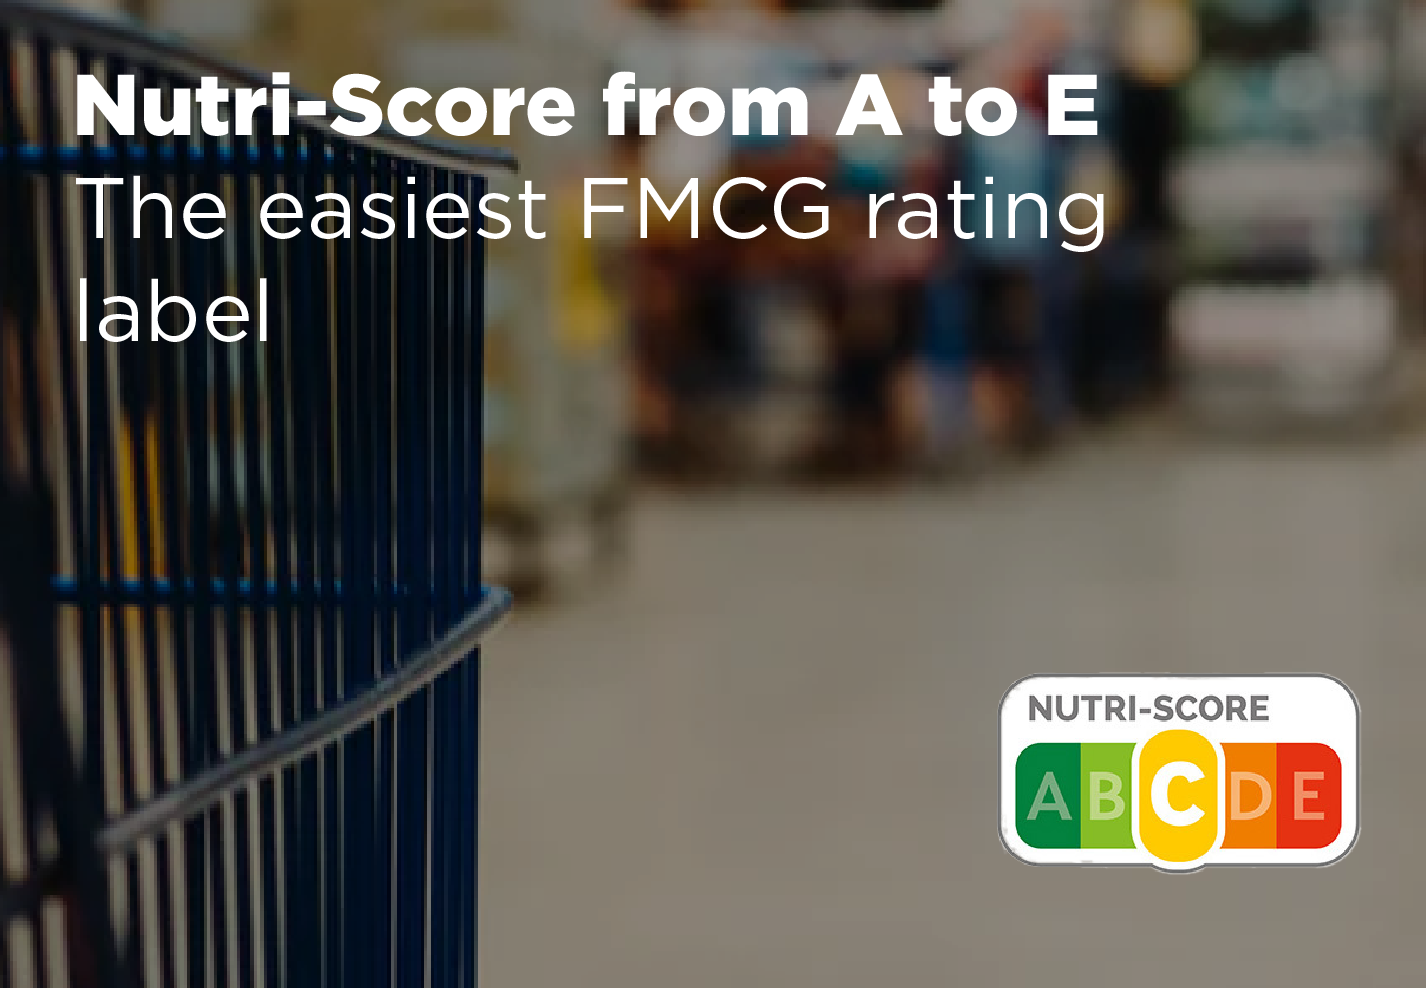 Nutri-Score From A to E: The Easiest FMCG Rating Label